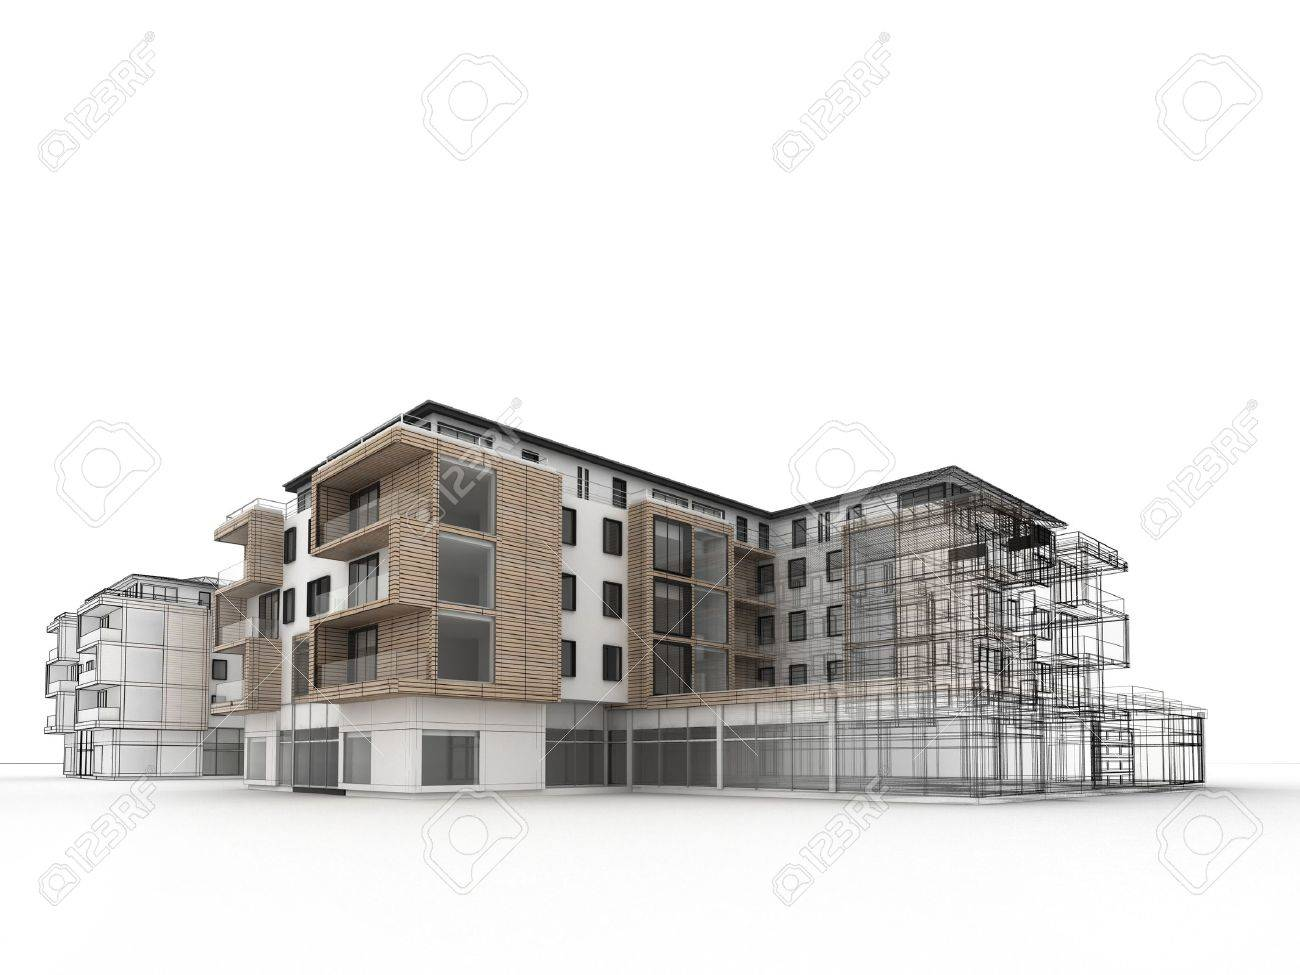 Apartment Building Design Drawing building design drawing